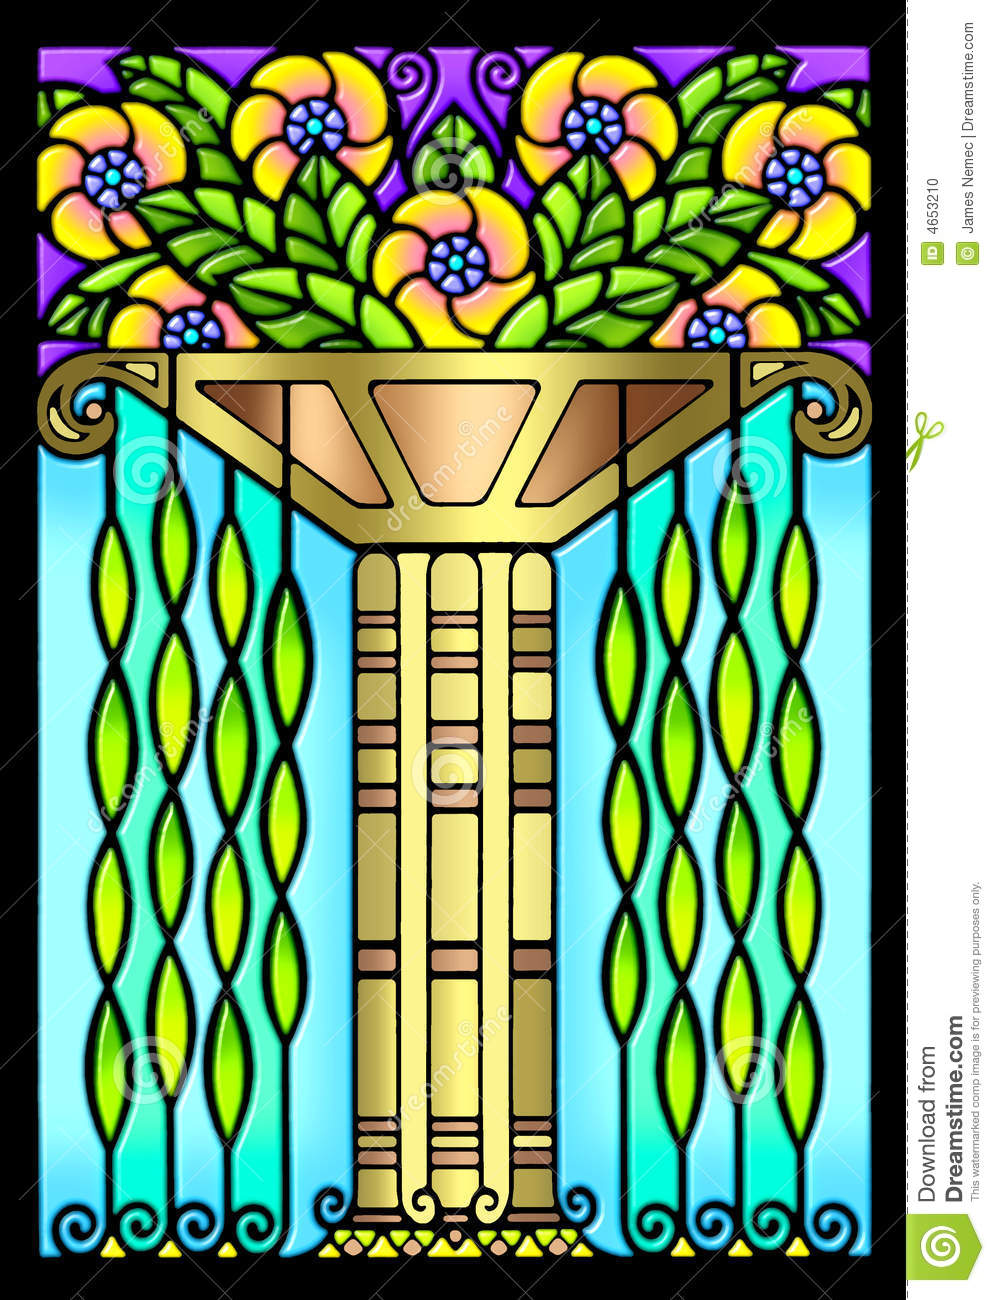 Hand Painted Art Deco Floral Design That Resembles A Stained Glass